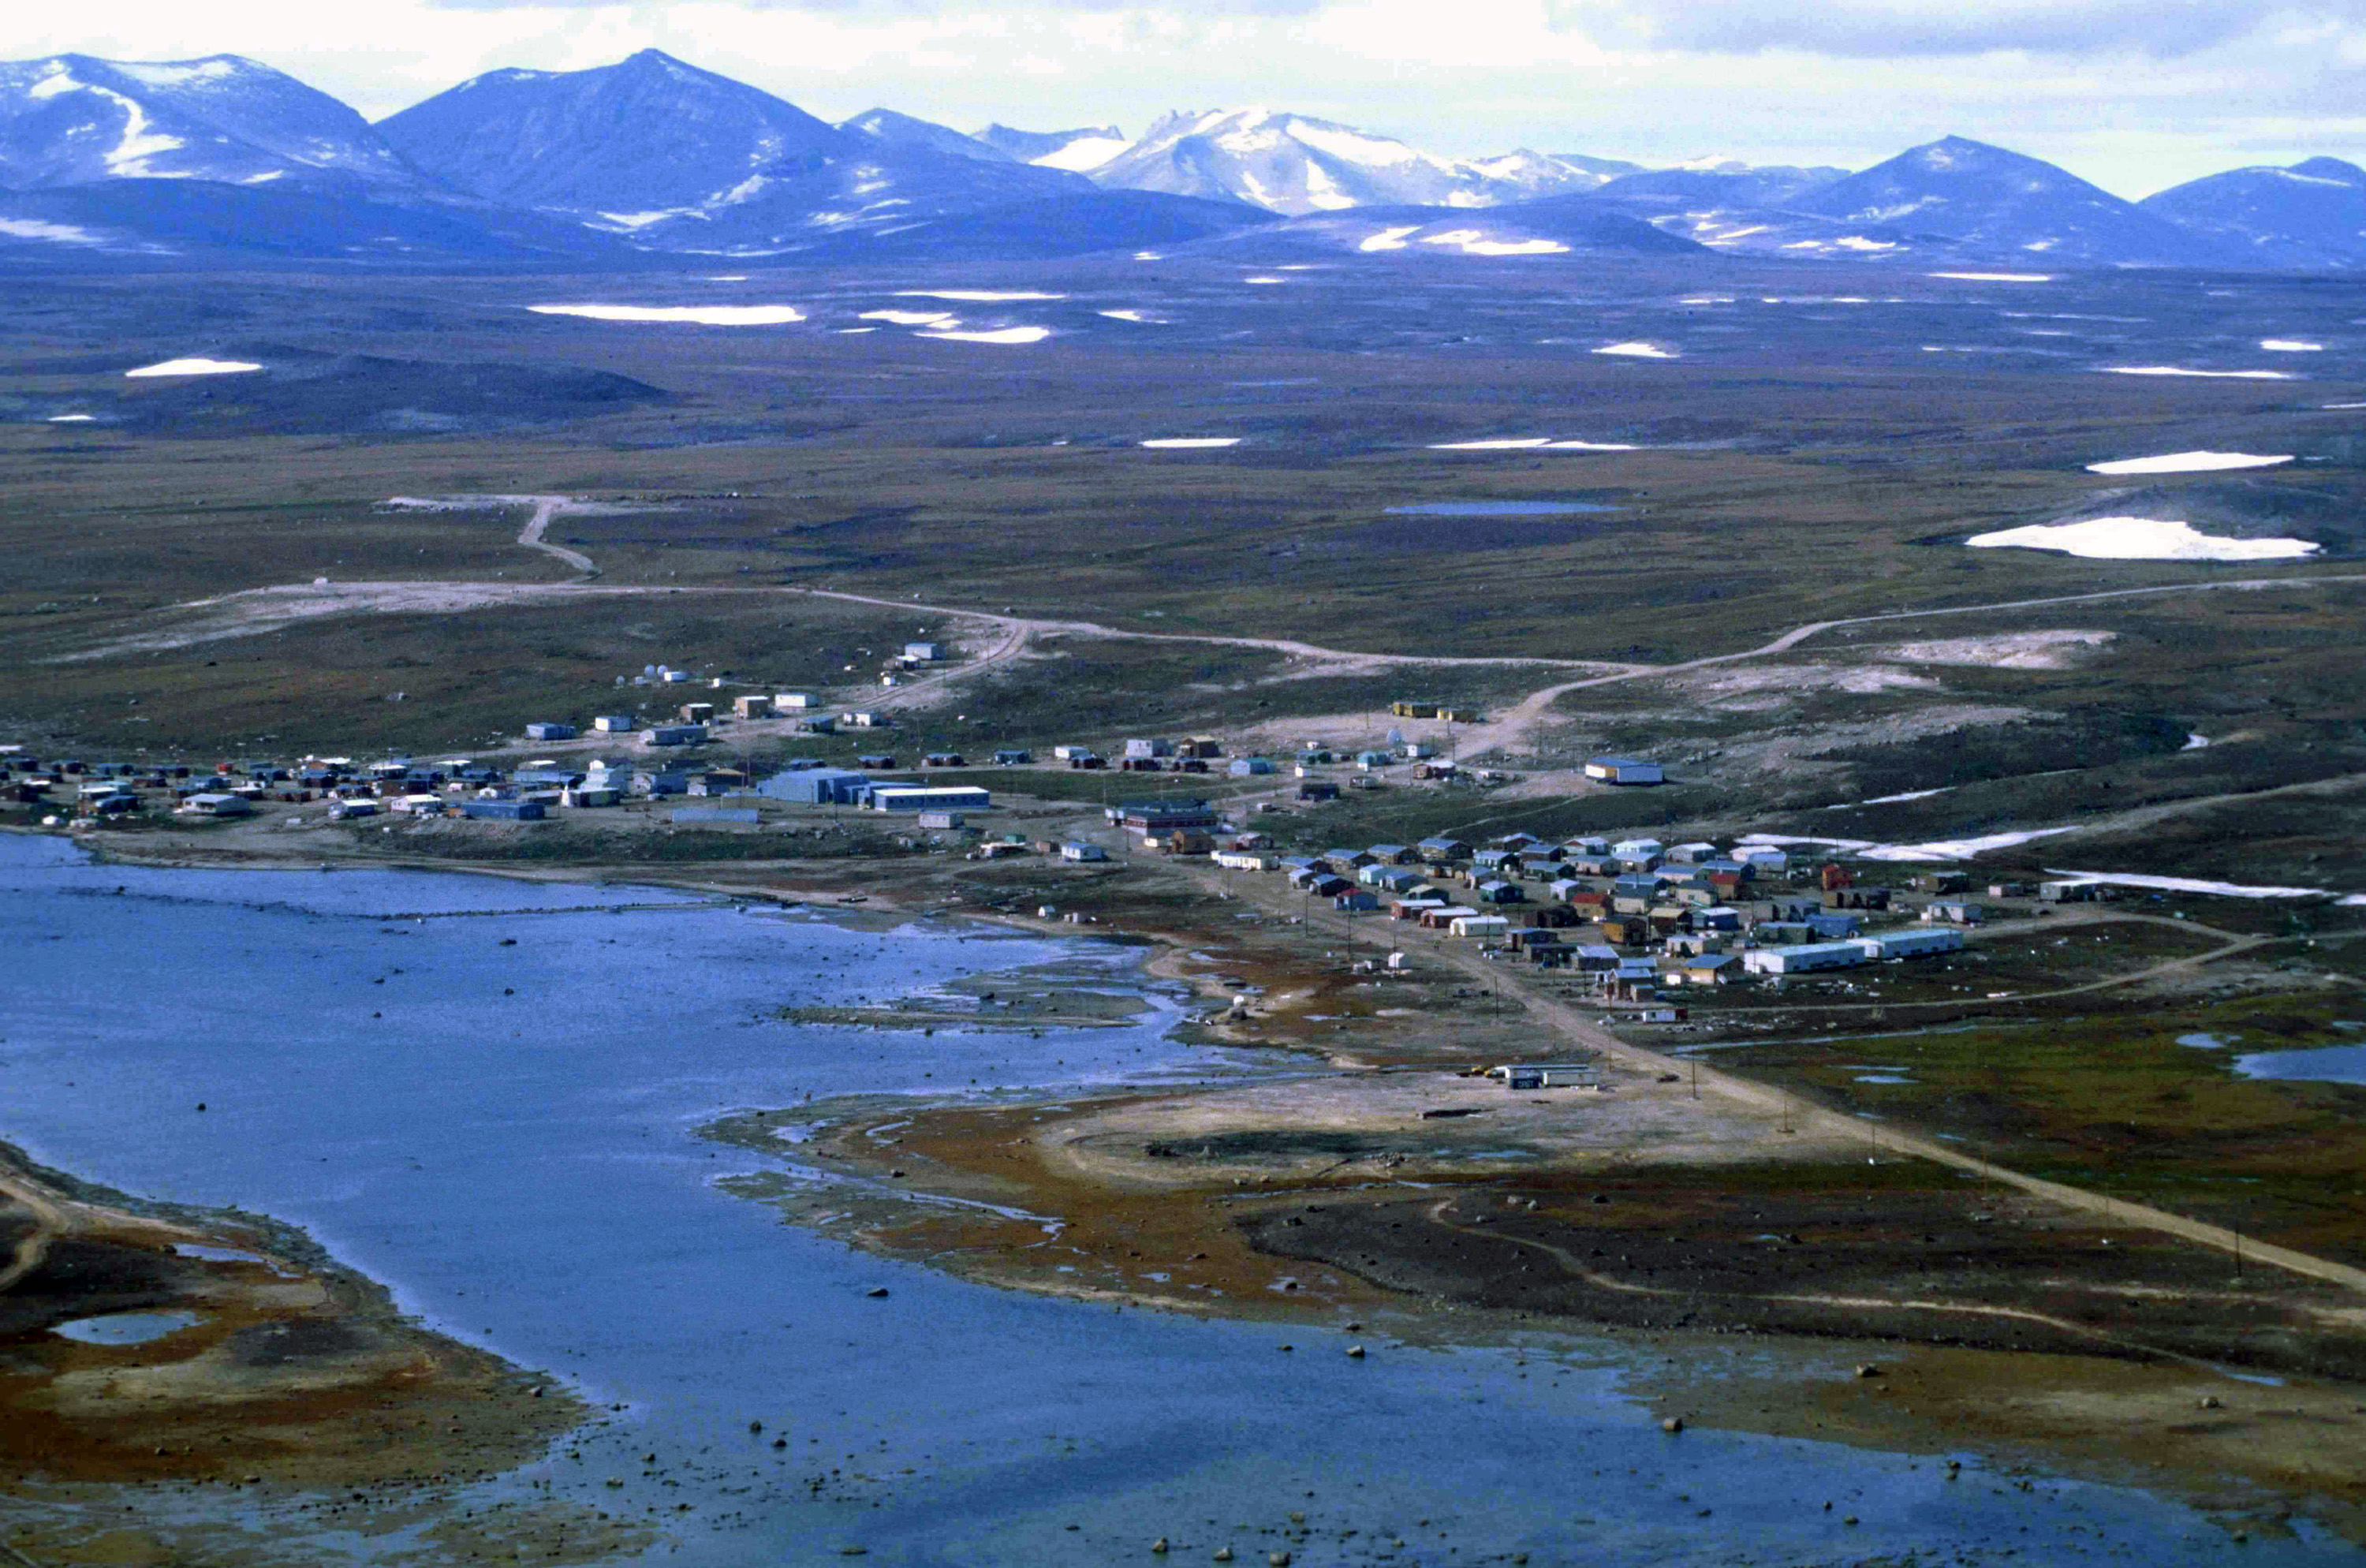 Tad Lemieux: Inuit community wins landmark court decision on consultation